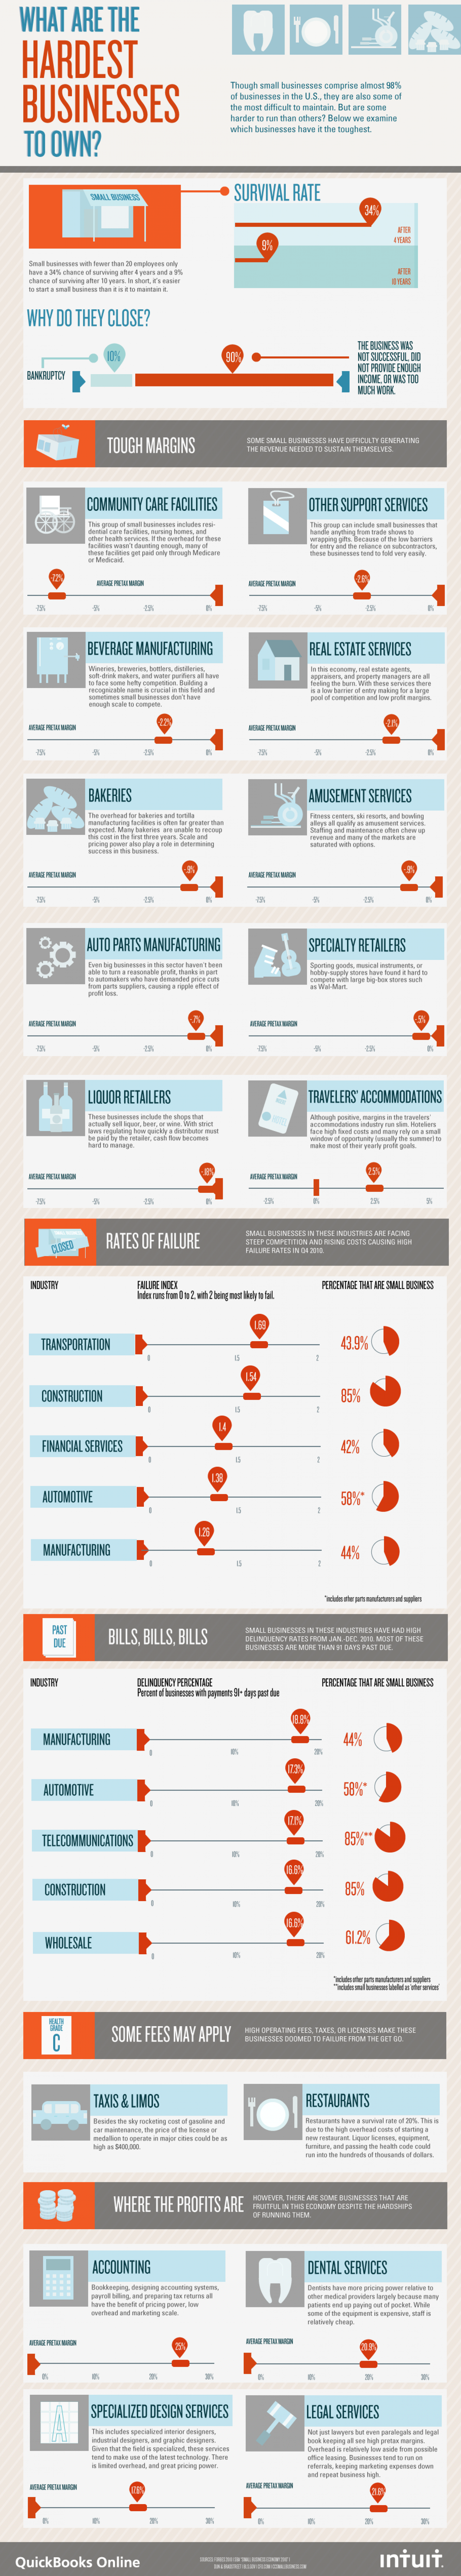 What Are The Hardest Businesses To Own?  Infographic